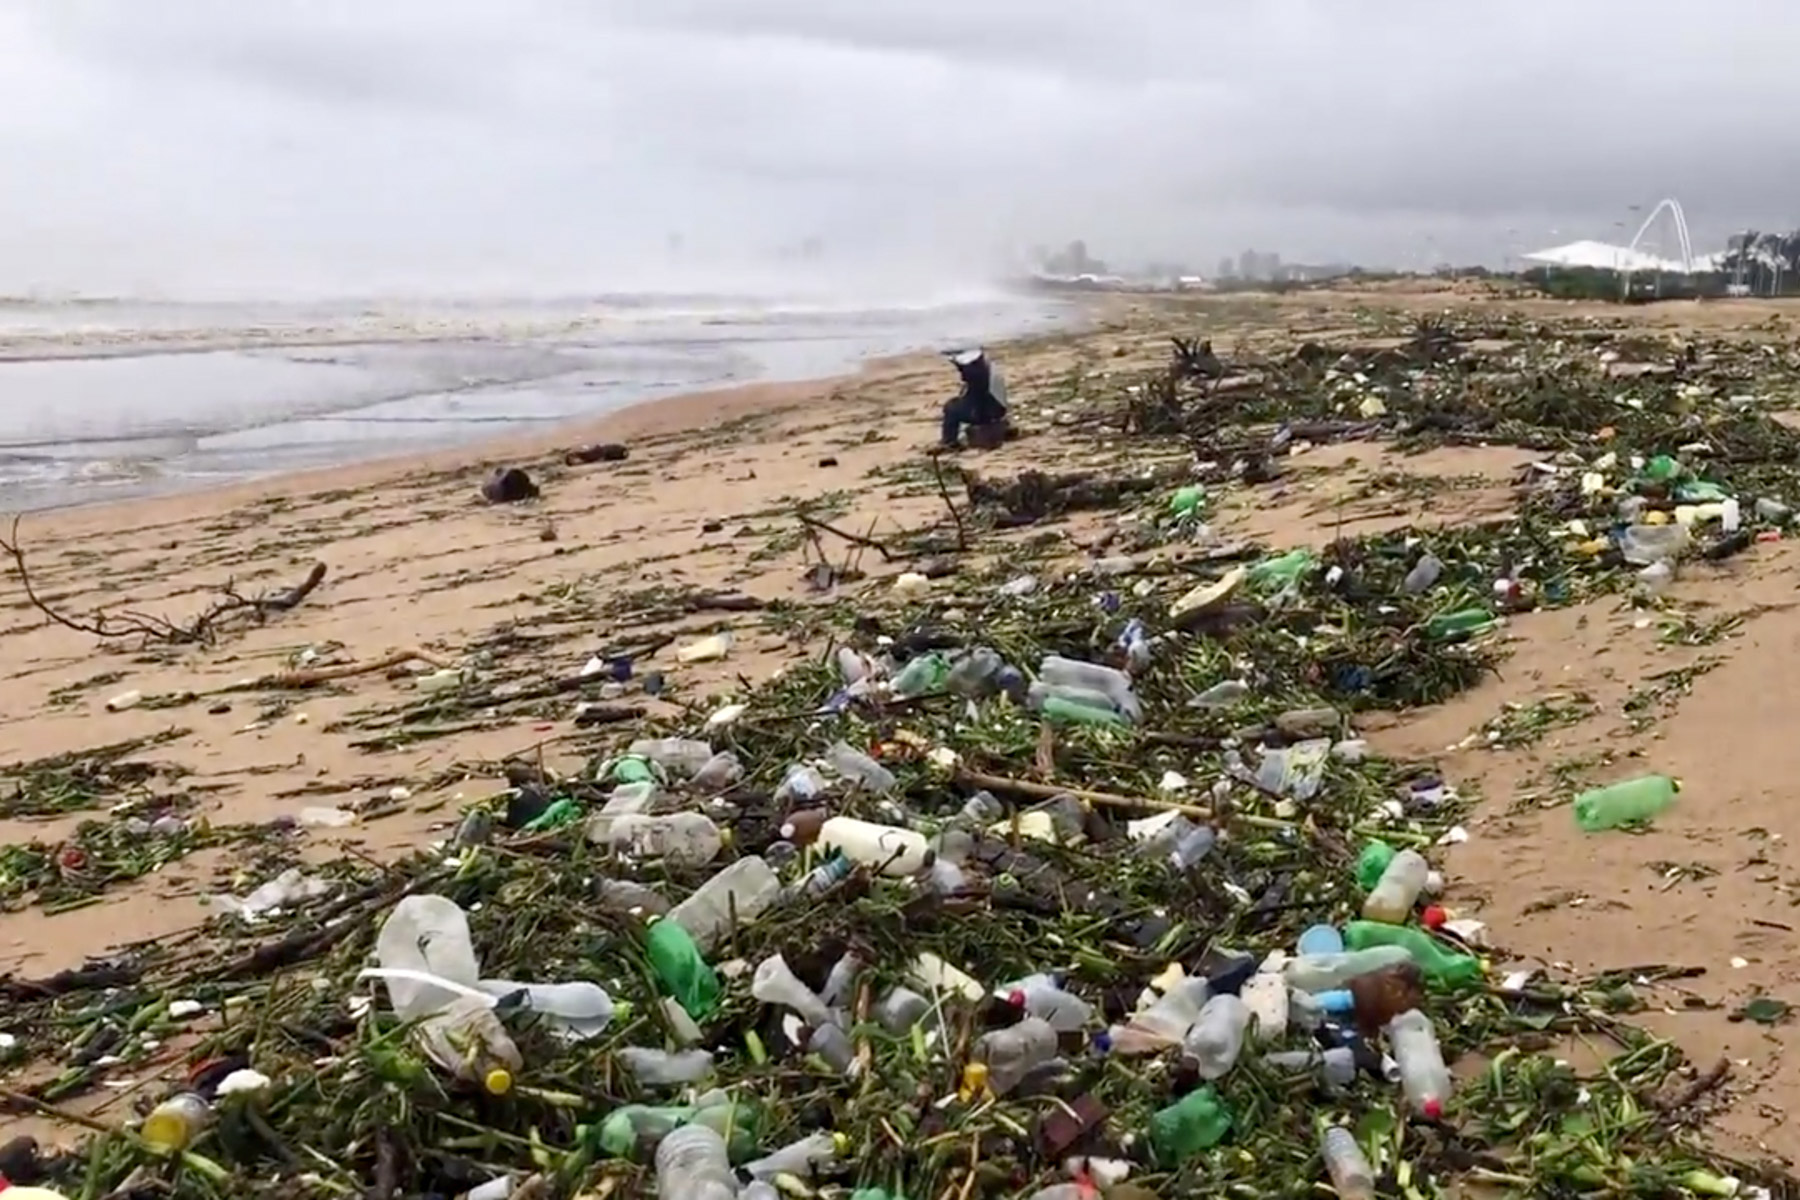 12 December 2019: Mounds of plastic rubbish litter the beach near the mouth of the Umgeni River in Durban, KwaZulu-Natal. (Photograph by Reuters/ Mike Frew)